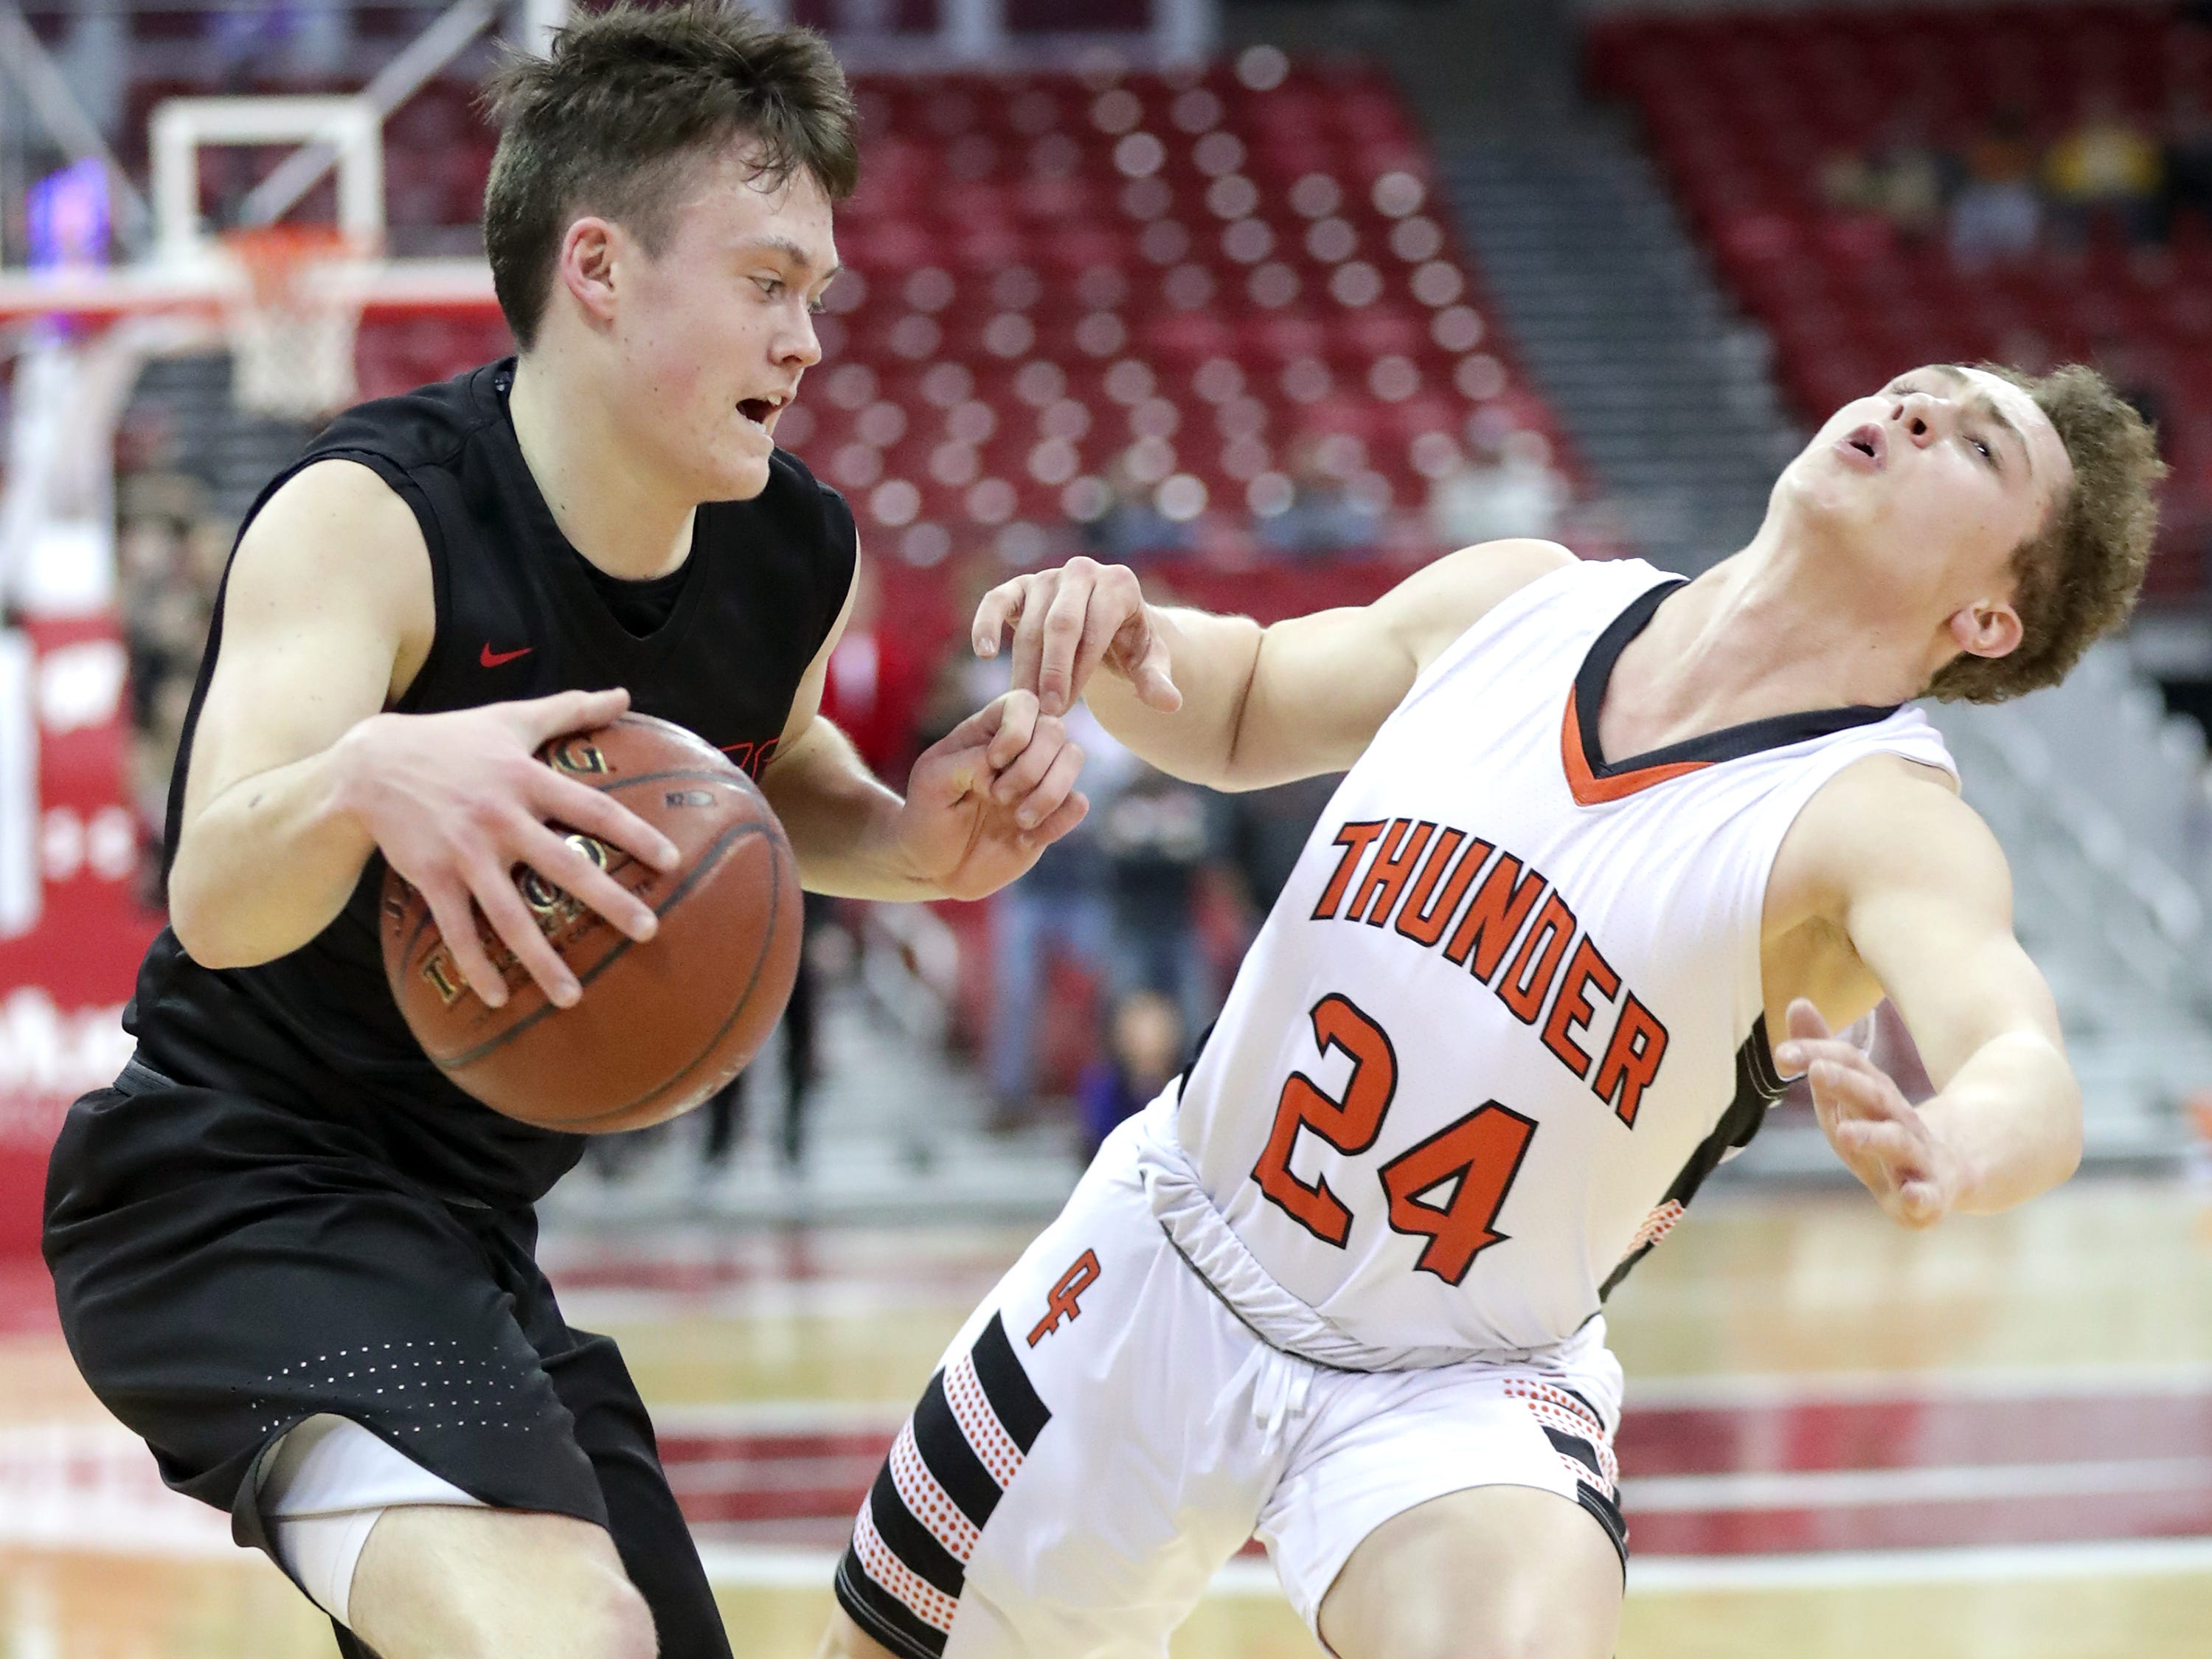 Lourdes Academy's #12 Joshua Bauer drives against Osseo-Fairchild High School's #24 Caden Boettcher during their WIAA Division 4 boys basketball state semifinal on Thursday, March 14, 2019, at the Kohl Center in Madison, Wis.